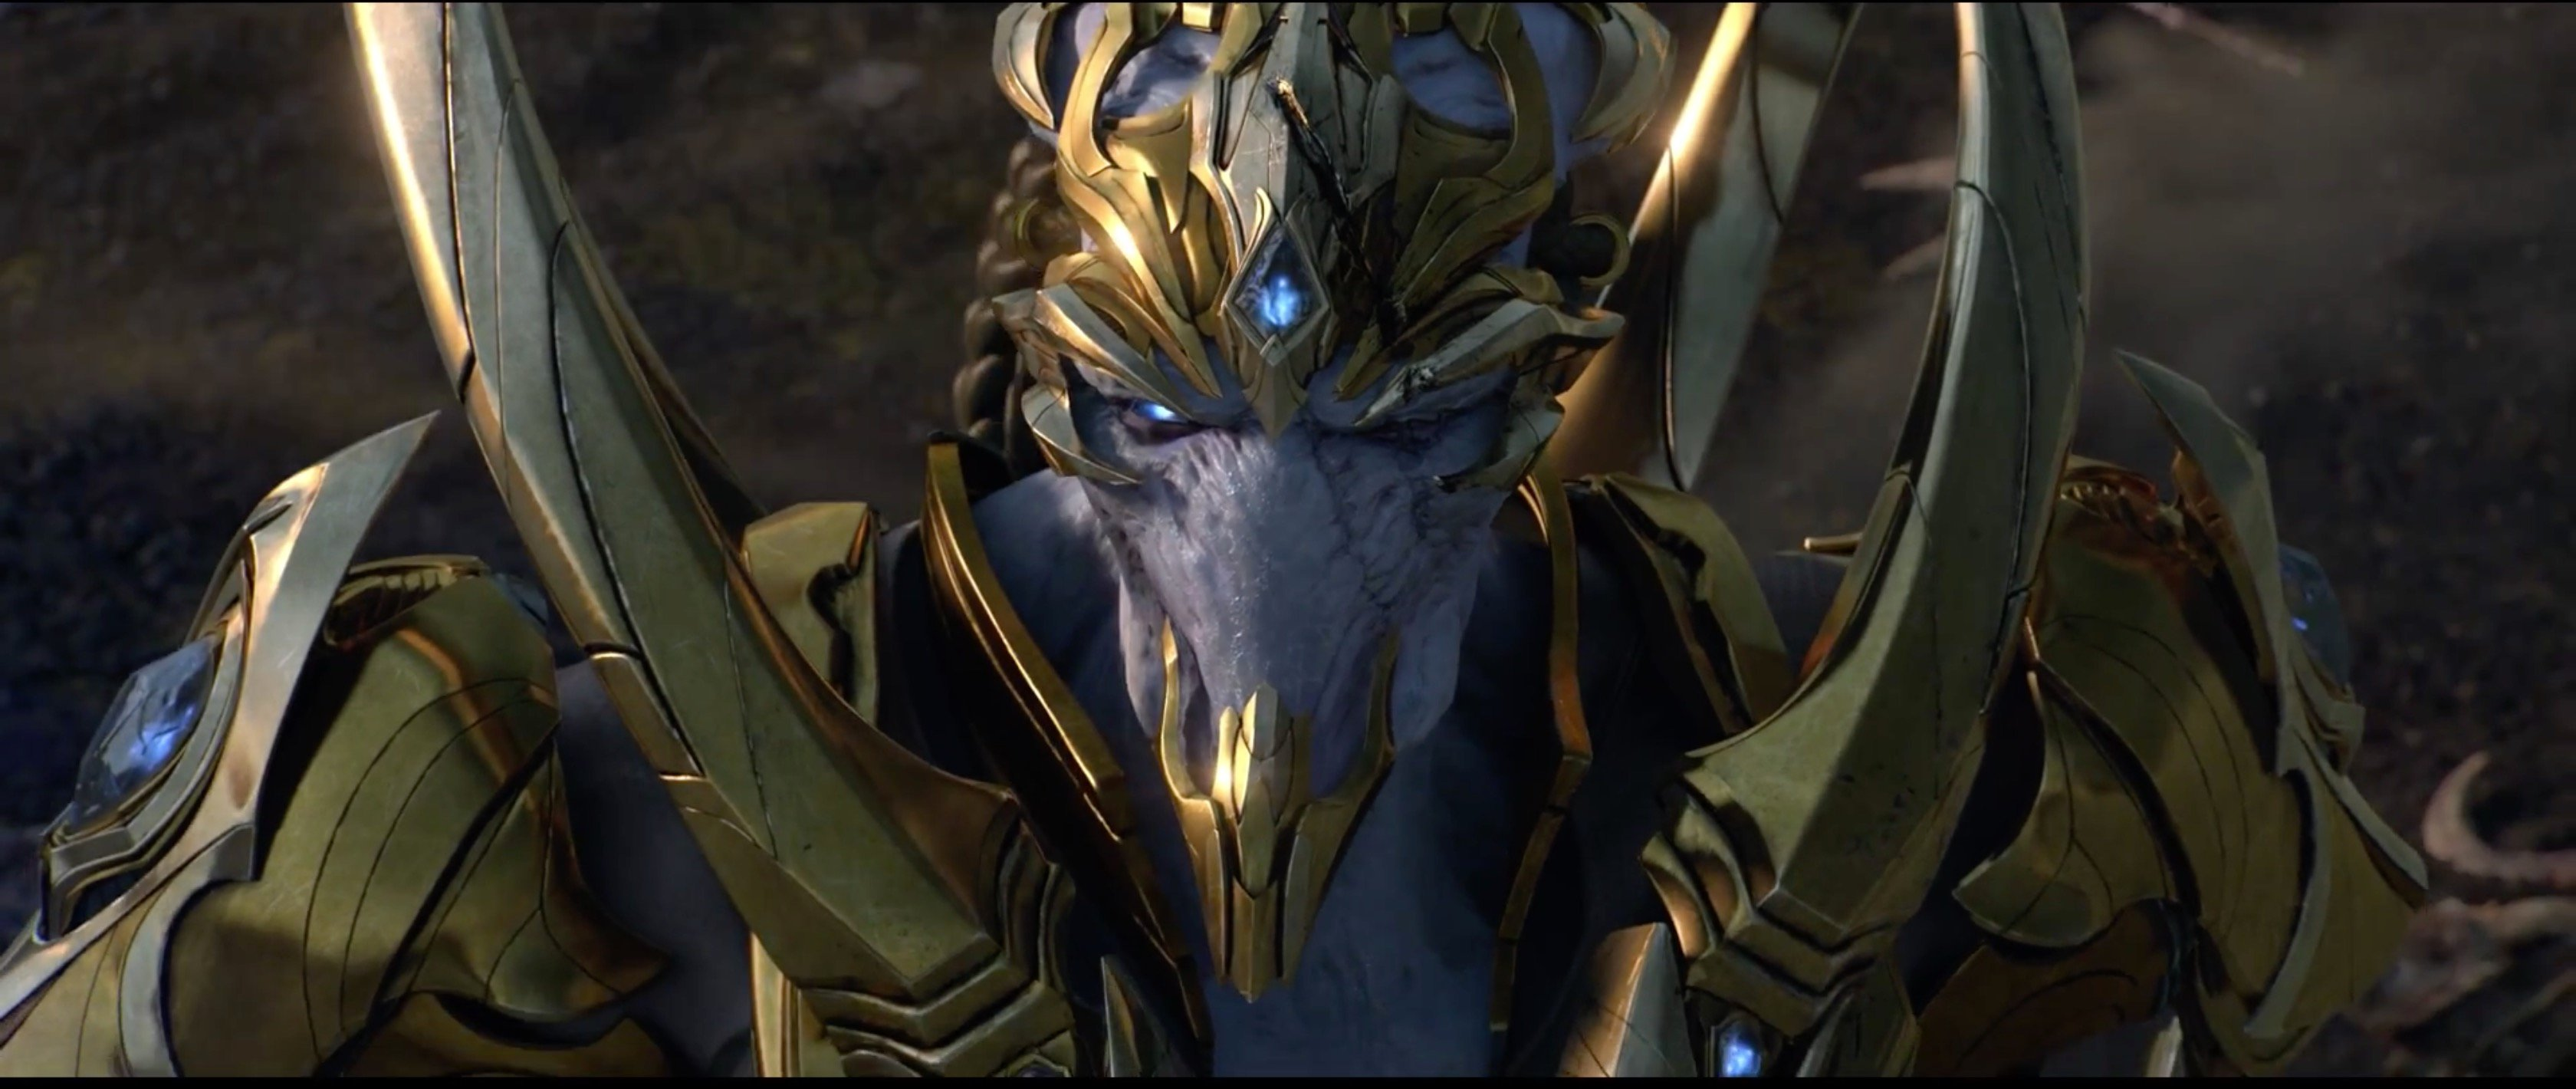 Starcraft 2 Protoss Wallpaper Hd posted by Ethan Sellers 3360x1420